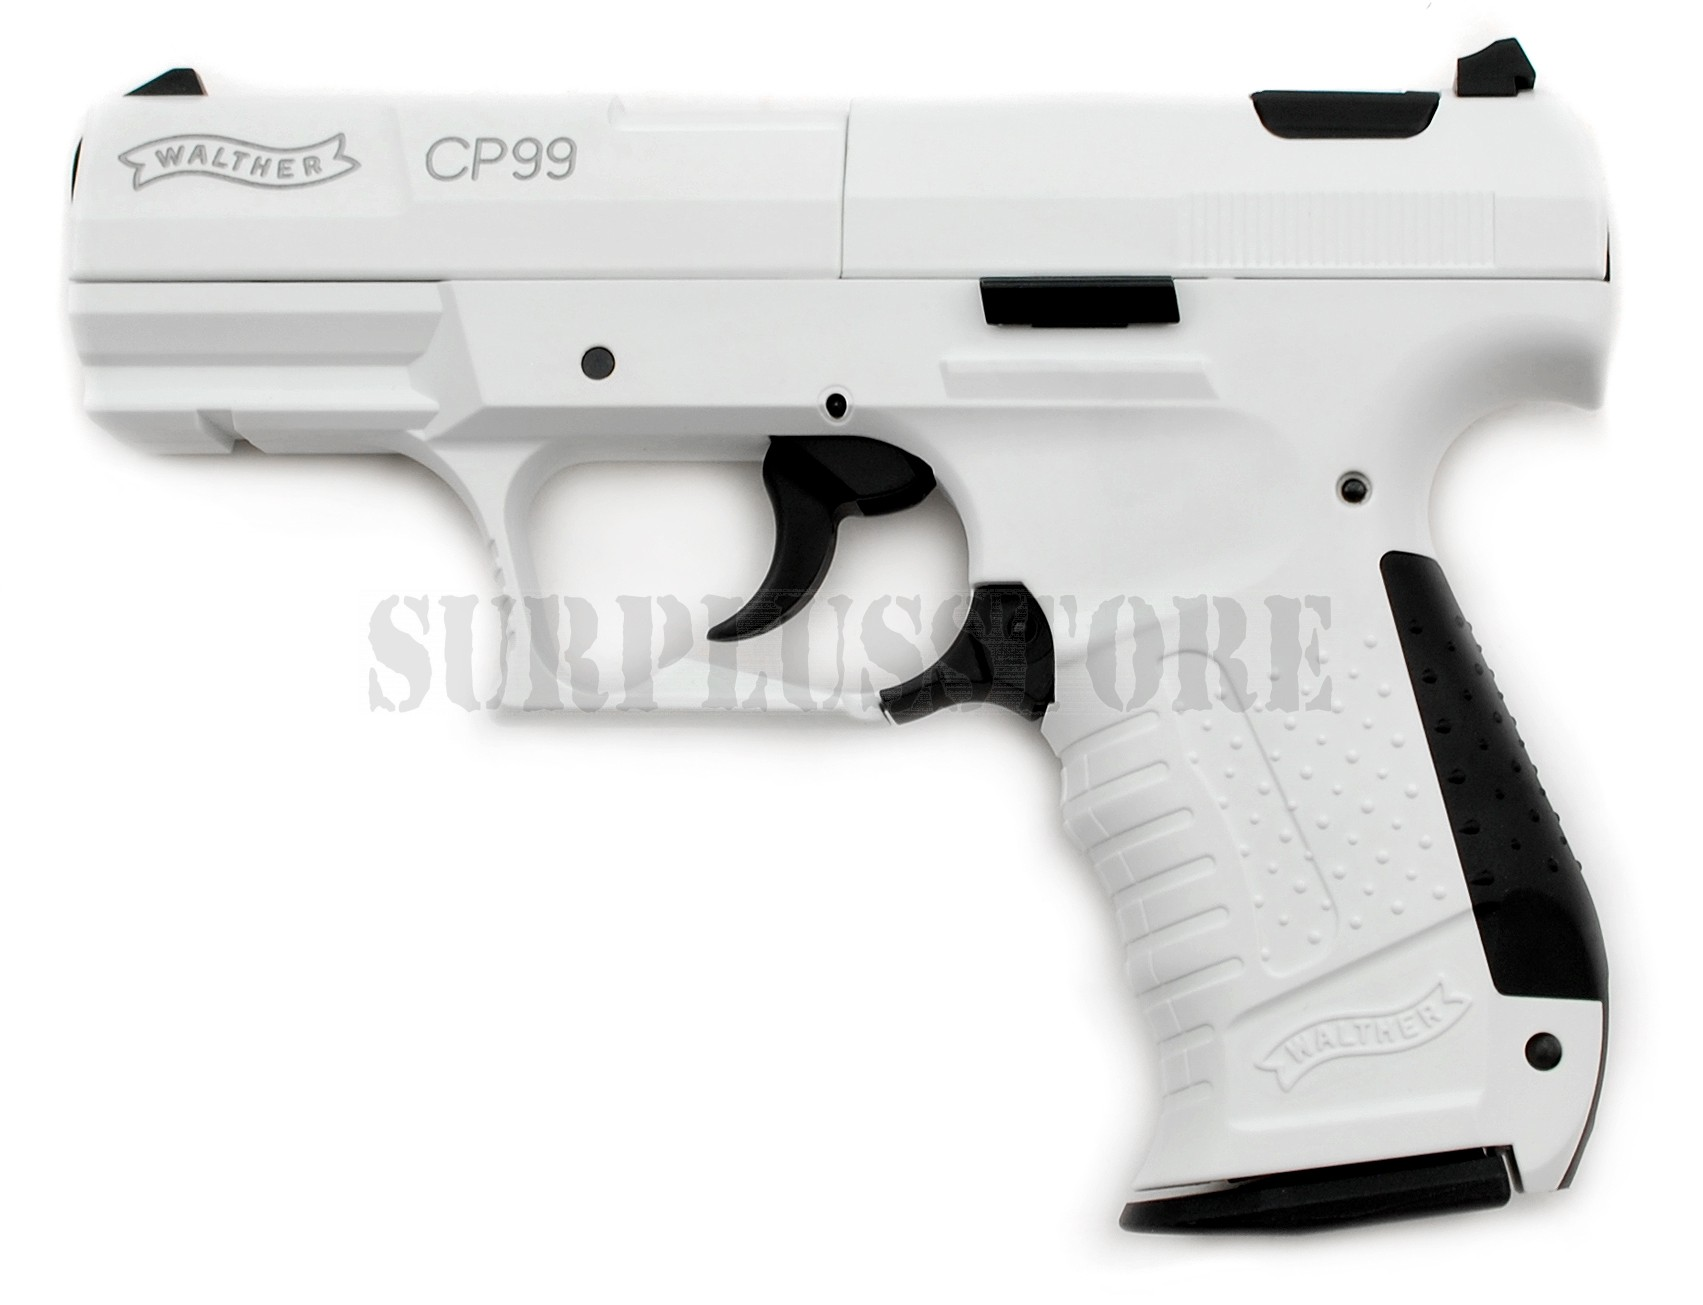 Walther CP99 Snowstar CO2 air pistol at Surplus Store